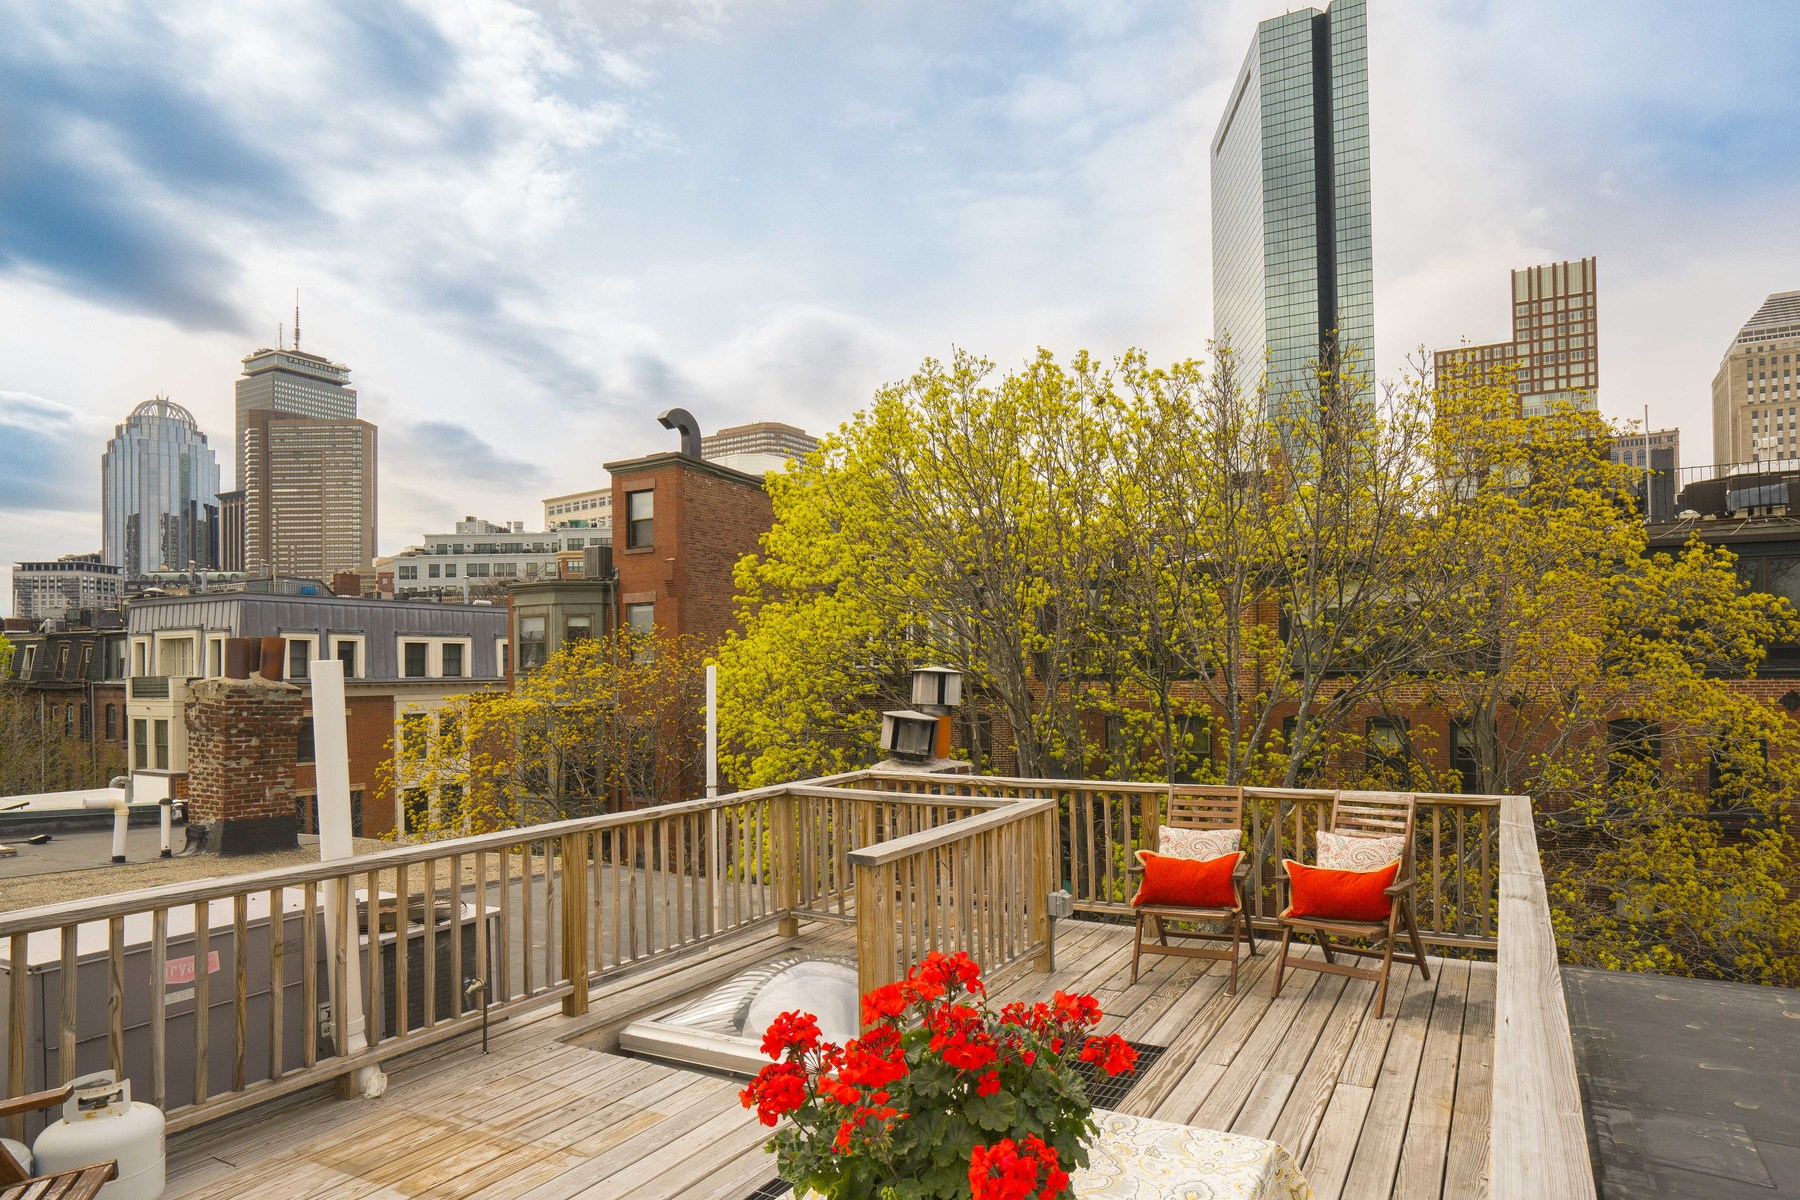 Single Family Home for Sale at Location, Location, Location ! Beautiful Penthouse duplex with huge Private Roof 24 Lawrence Unit 2 South End, Boston, Massachusetts, 02116 United States